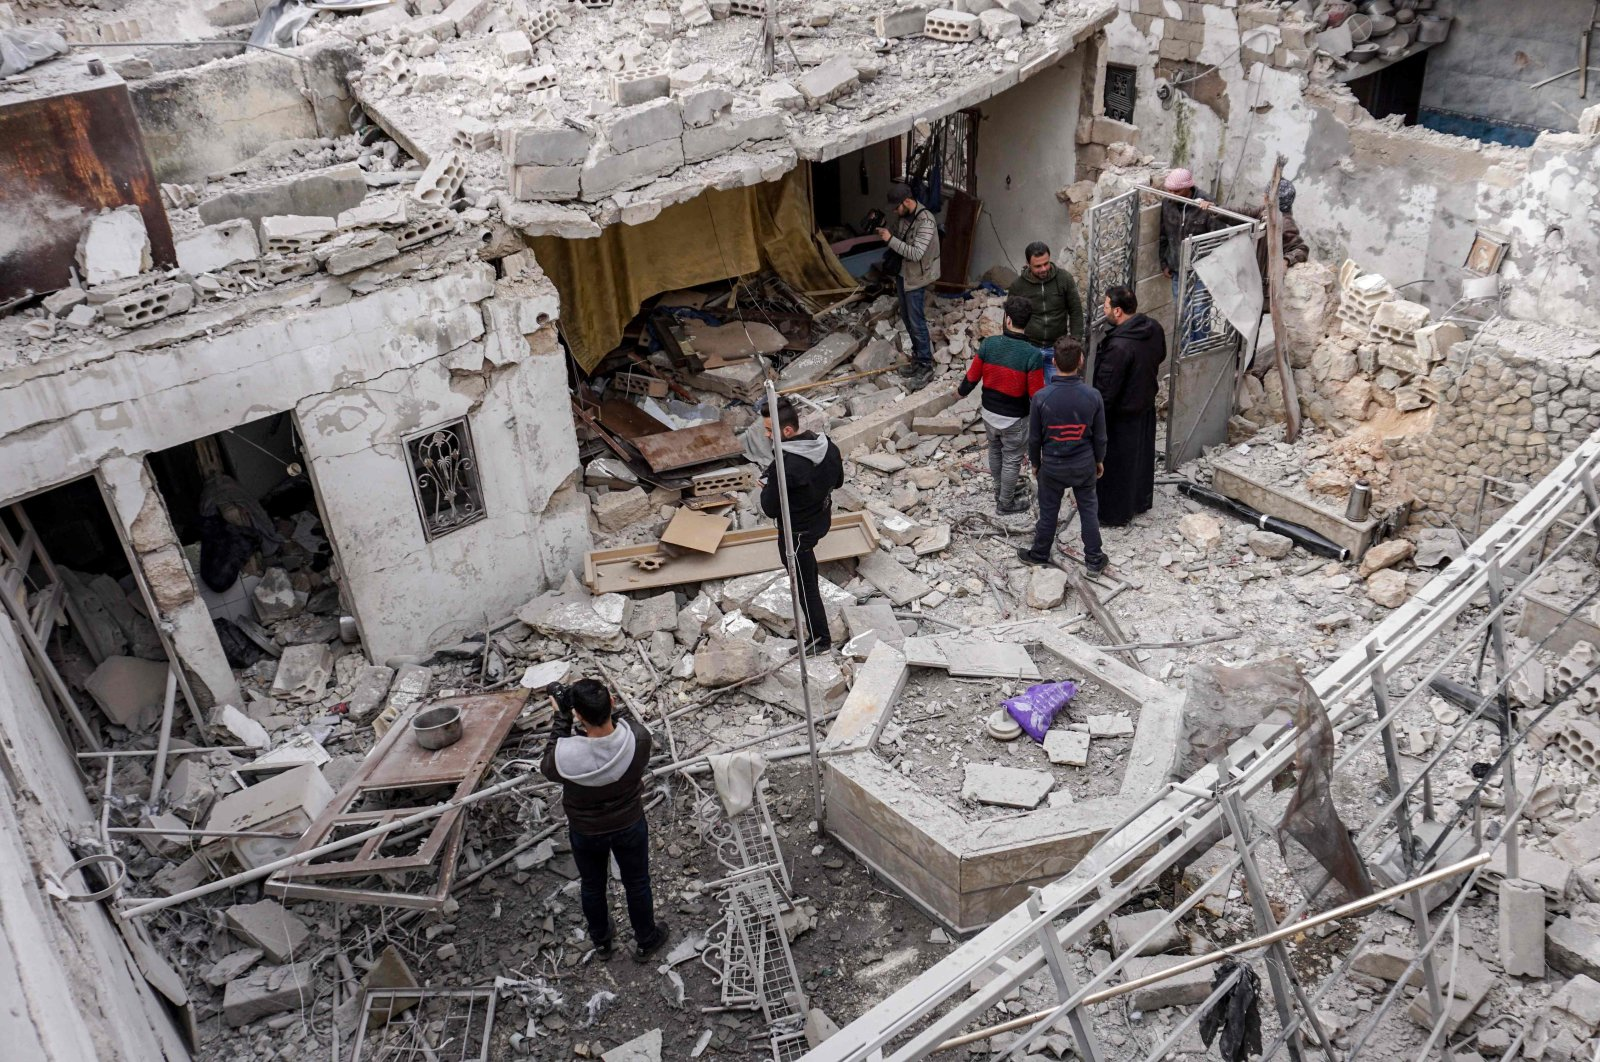 Syrians inspect damage from a reported regime airstrike at a civilian residence in the town of Saraqib in the northwestern Idlib province, Syria, March 10, 2019. (AFP Photo)